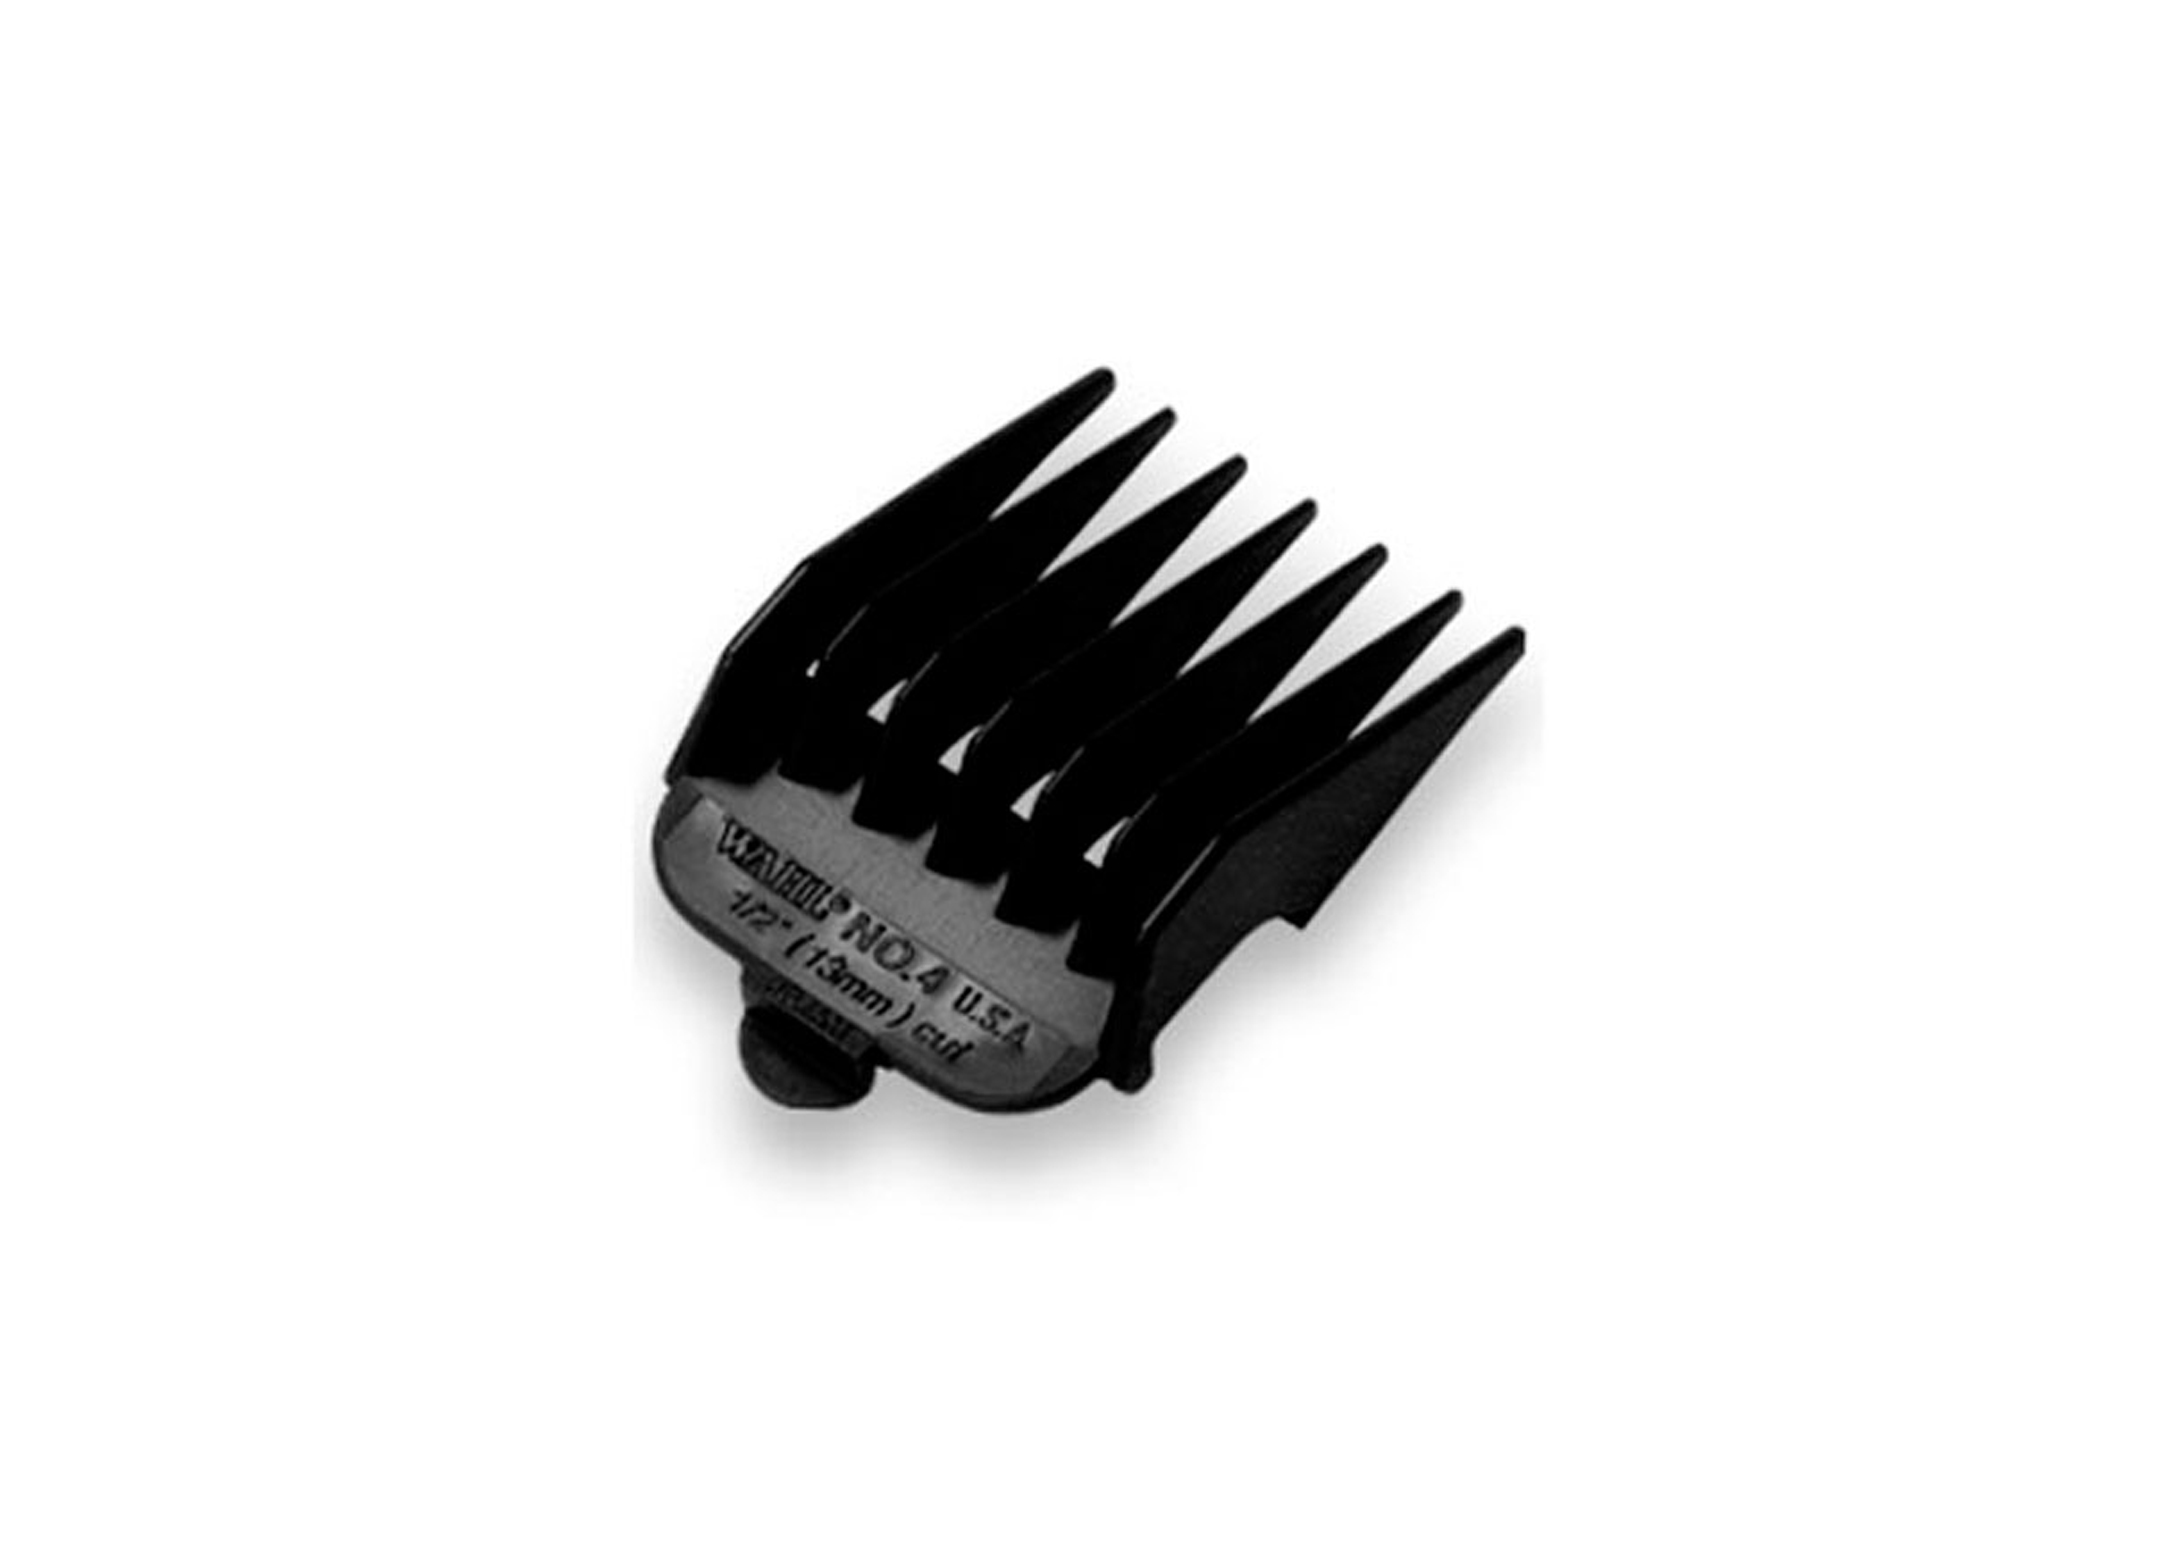 Wahl Snap on Comb 13 mm Clipper Attachment